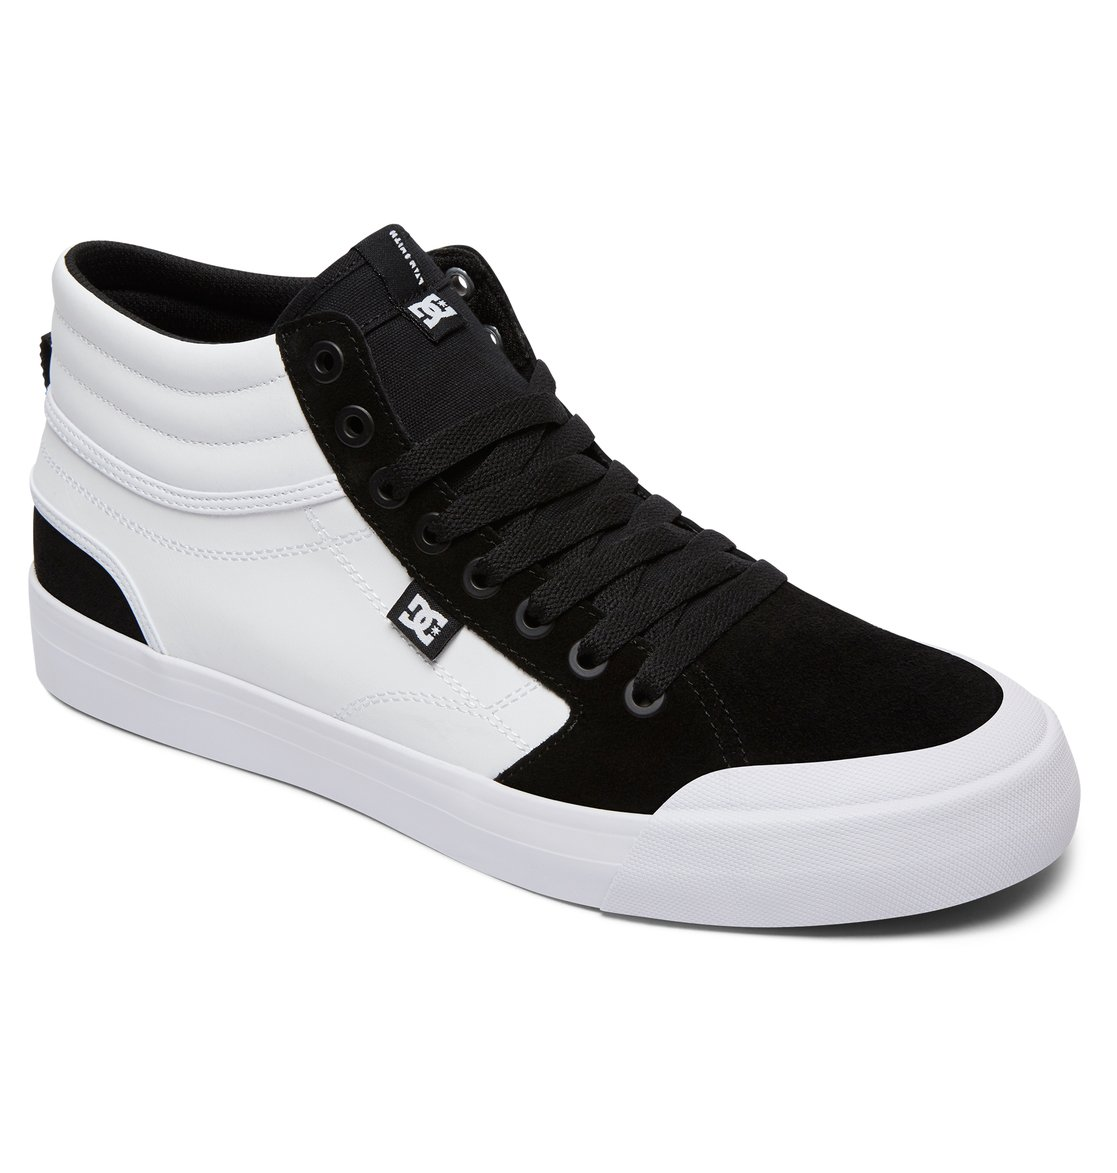 Dc Shoes Evan Smith Hi Shoe Women GX62293